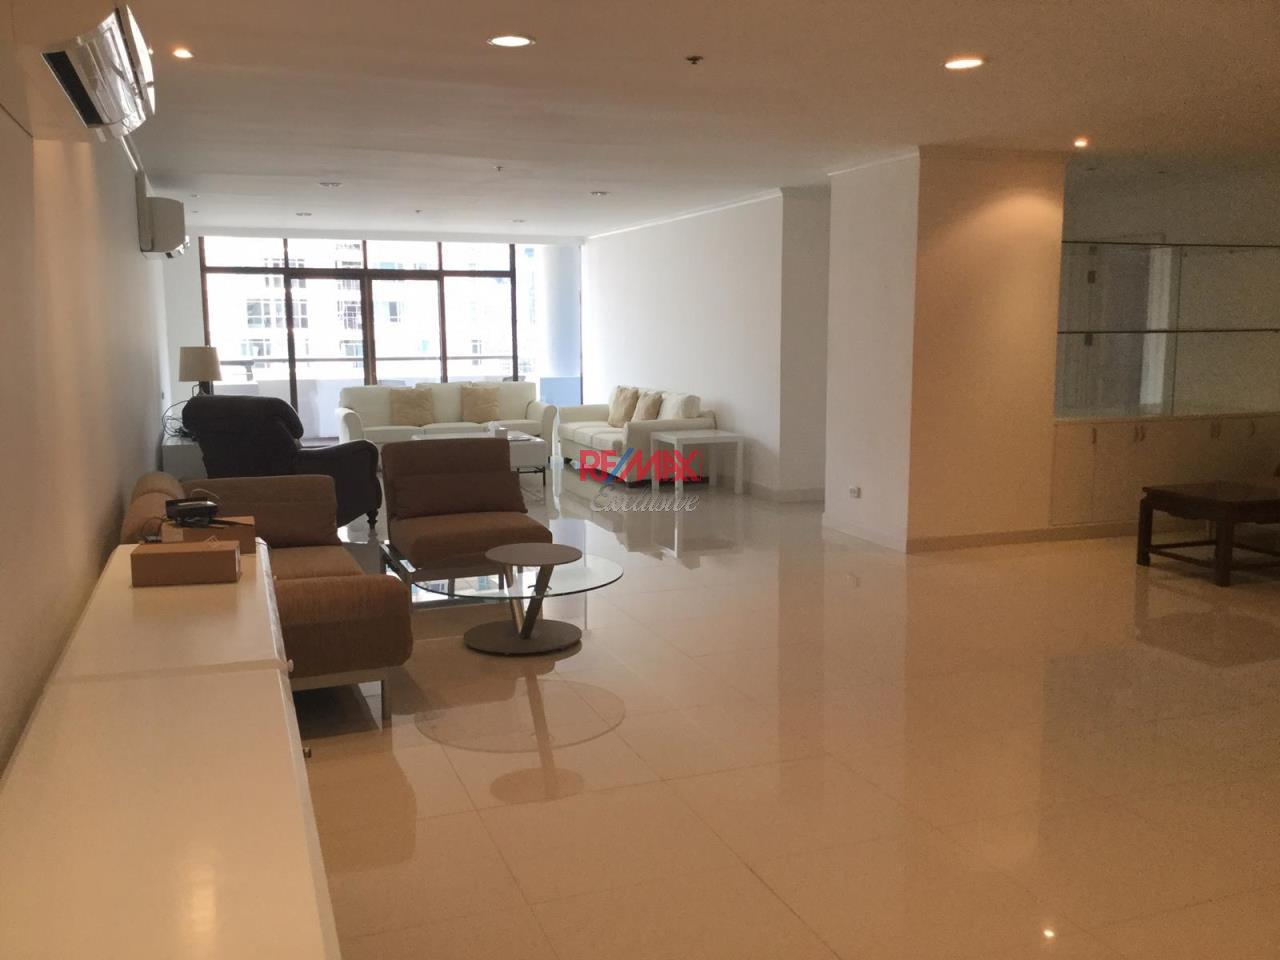 RE/MAX Exclusive Agency's Kallista Mansion, 4 Bedroom 350 Sqm. for Rent 1